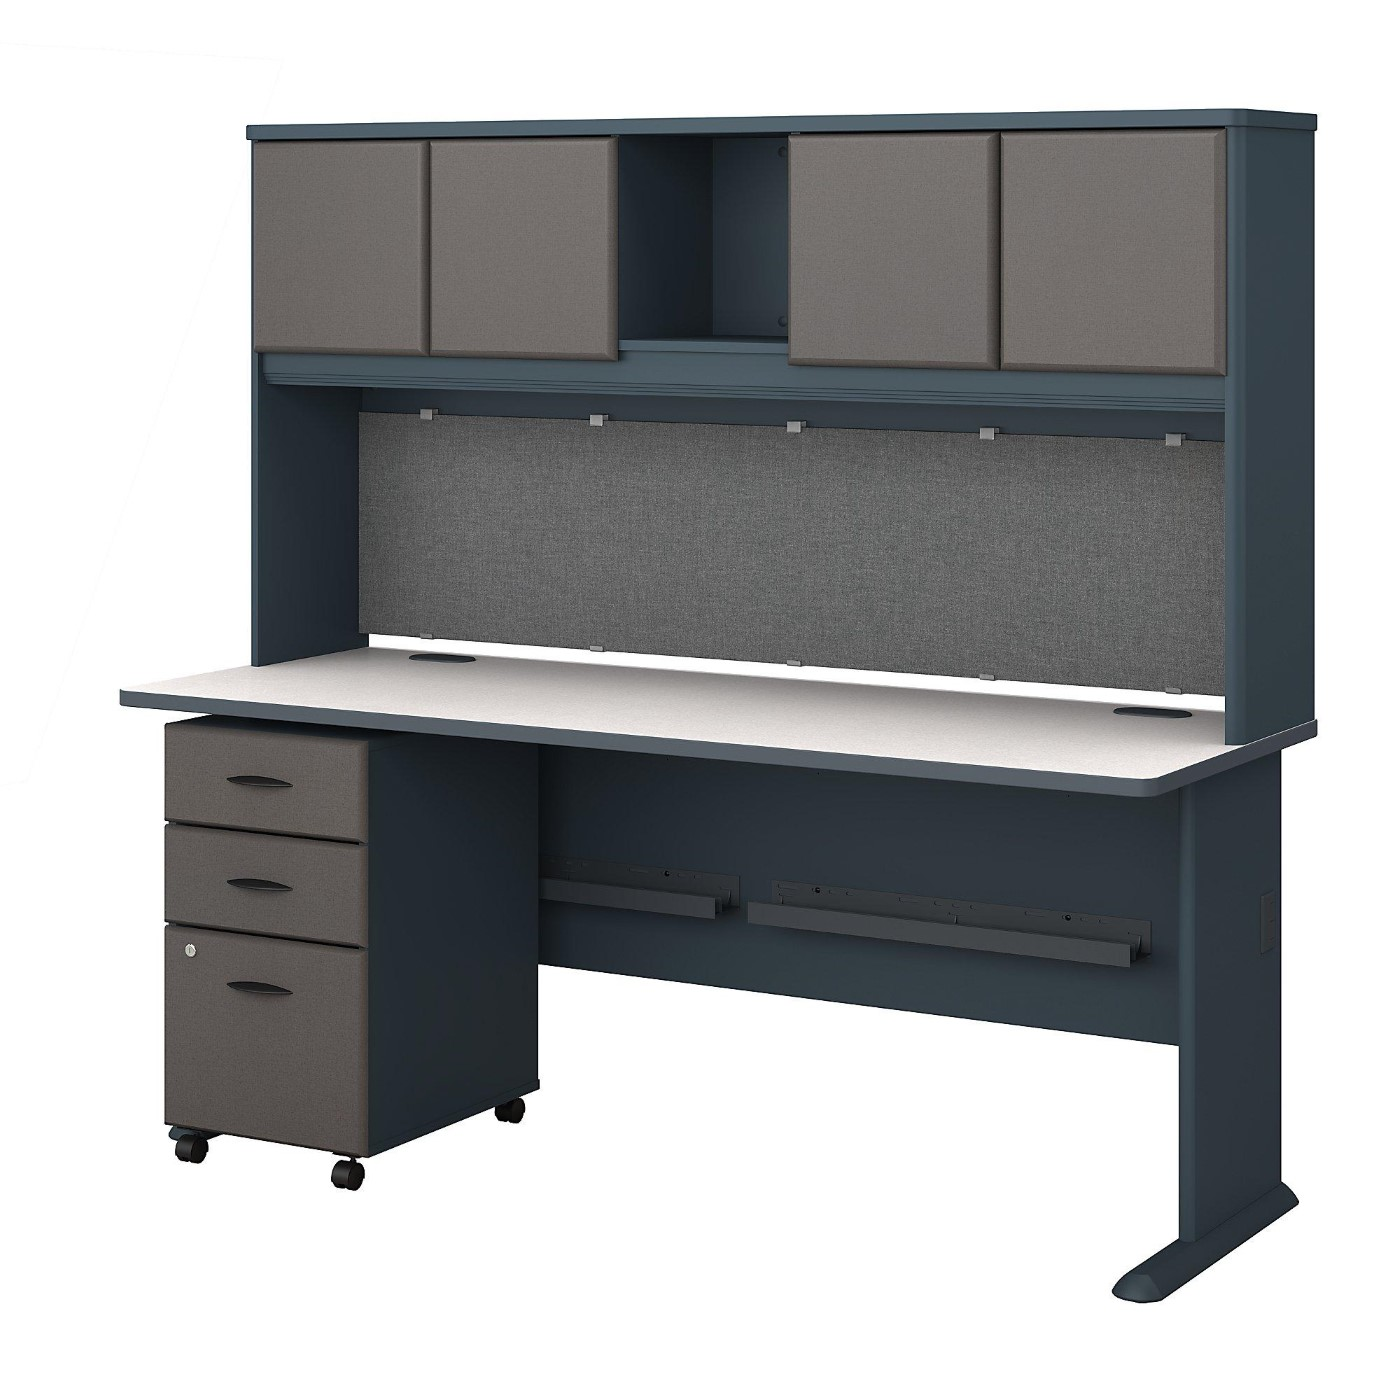 BUSH BUSINESS FURNITURE SERIES A 72W DESK WITH HUTCH AND MOBILE FILE CABINET. FREE SHIPPING.